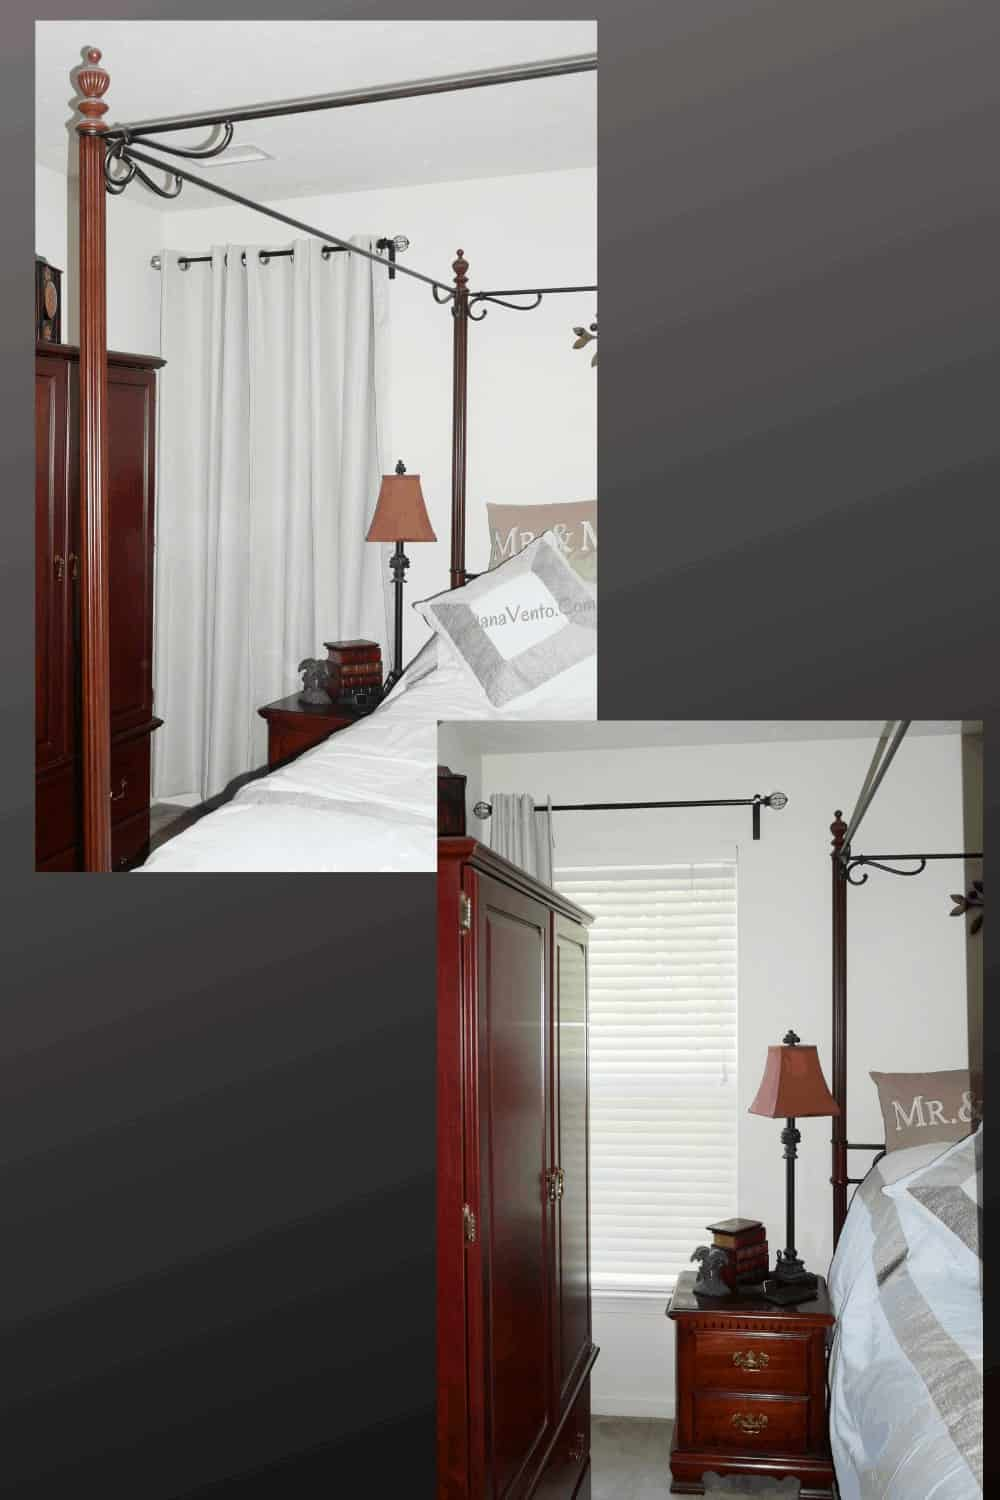 Dressed window with energy-efficient curtains